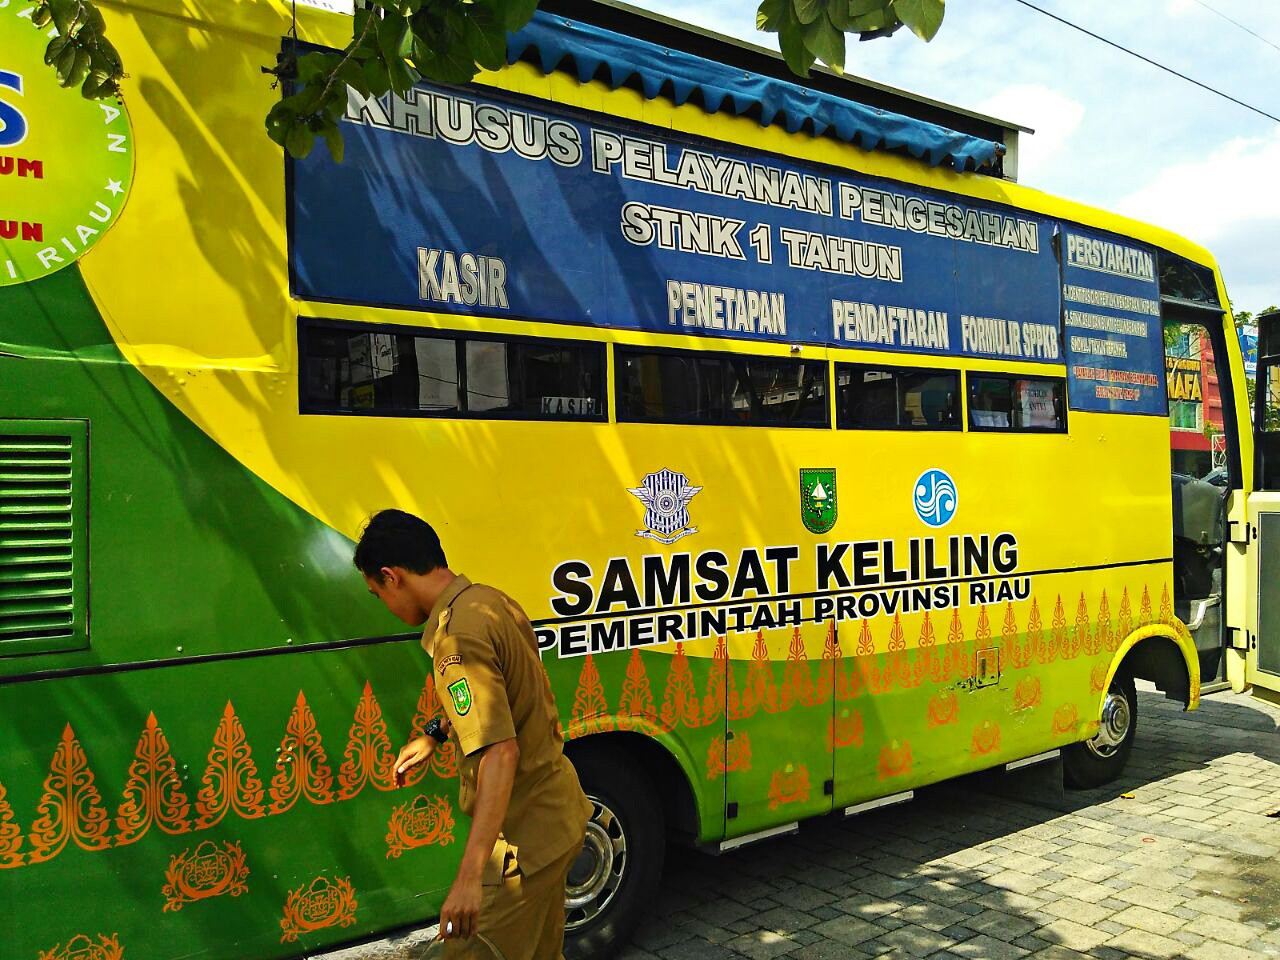 15 police officers arrested over alleged illegal levies in Riau